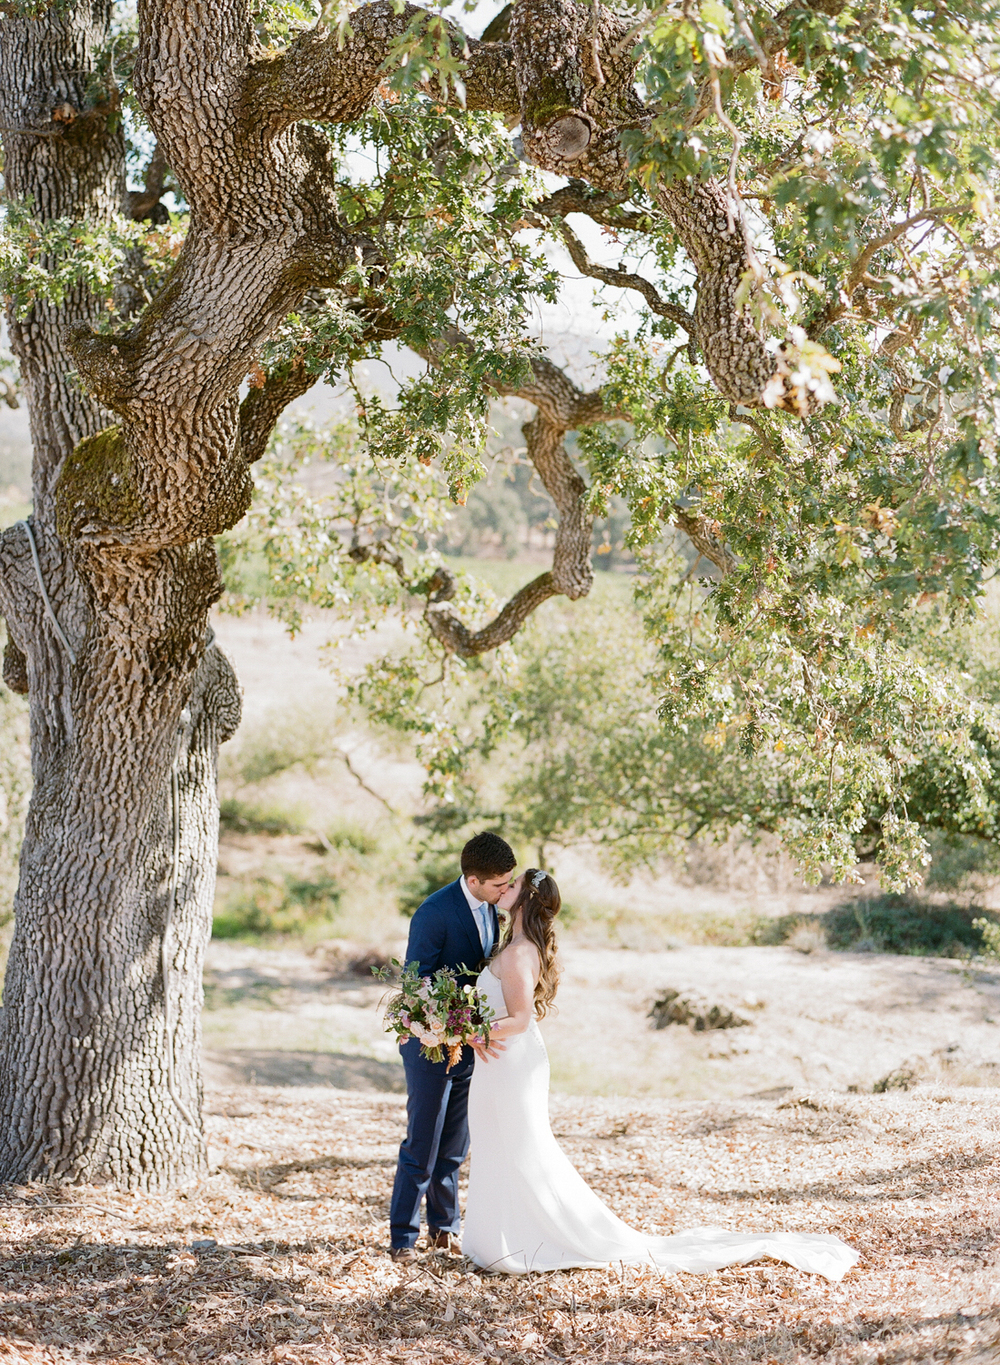 Tali and Sam kiss under a gorgeous oak in Napa before their wedding ceremony; photo by Sylvie Gil